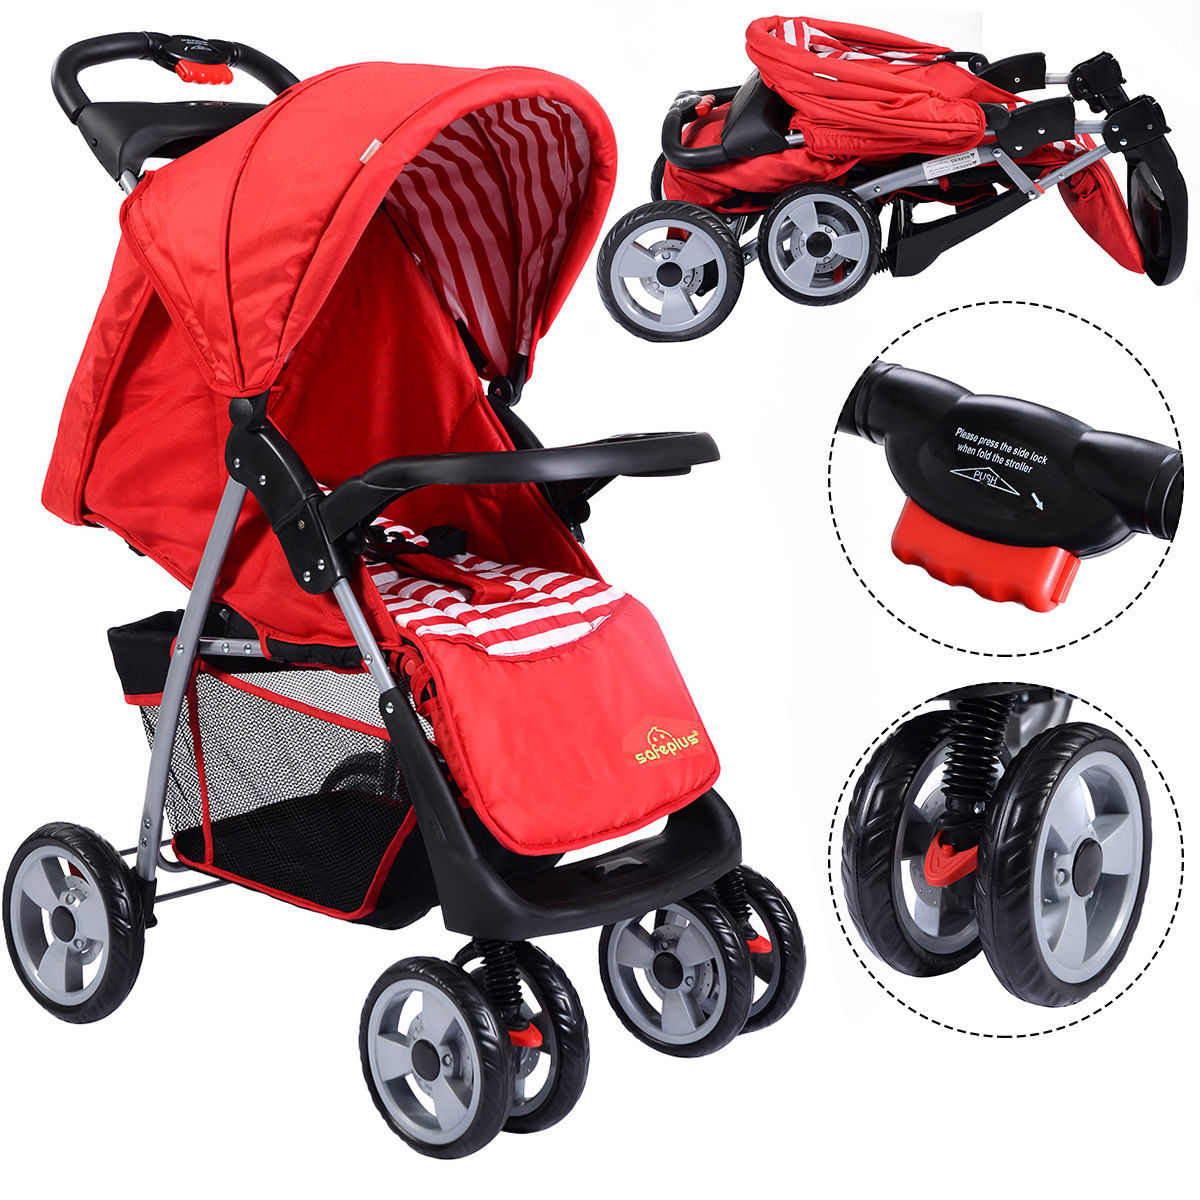 Costway Foldable Baby Kids Travel Stroller Newborn Infant Buggy Pushchair Child Red